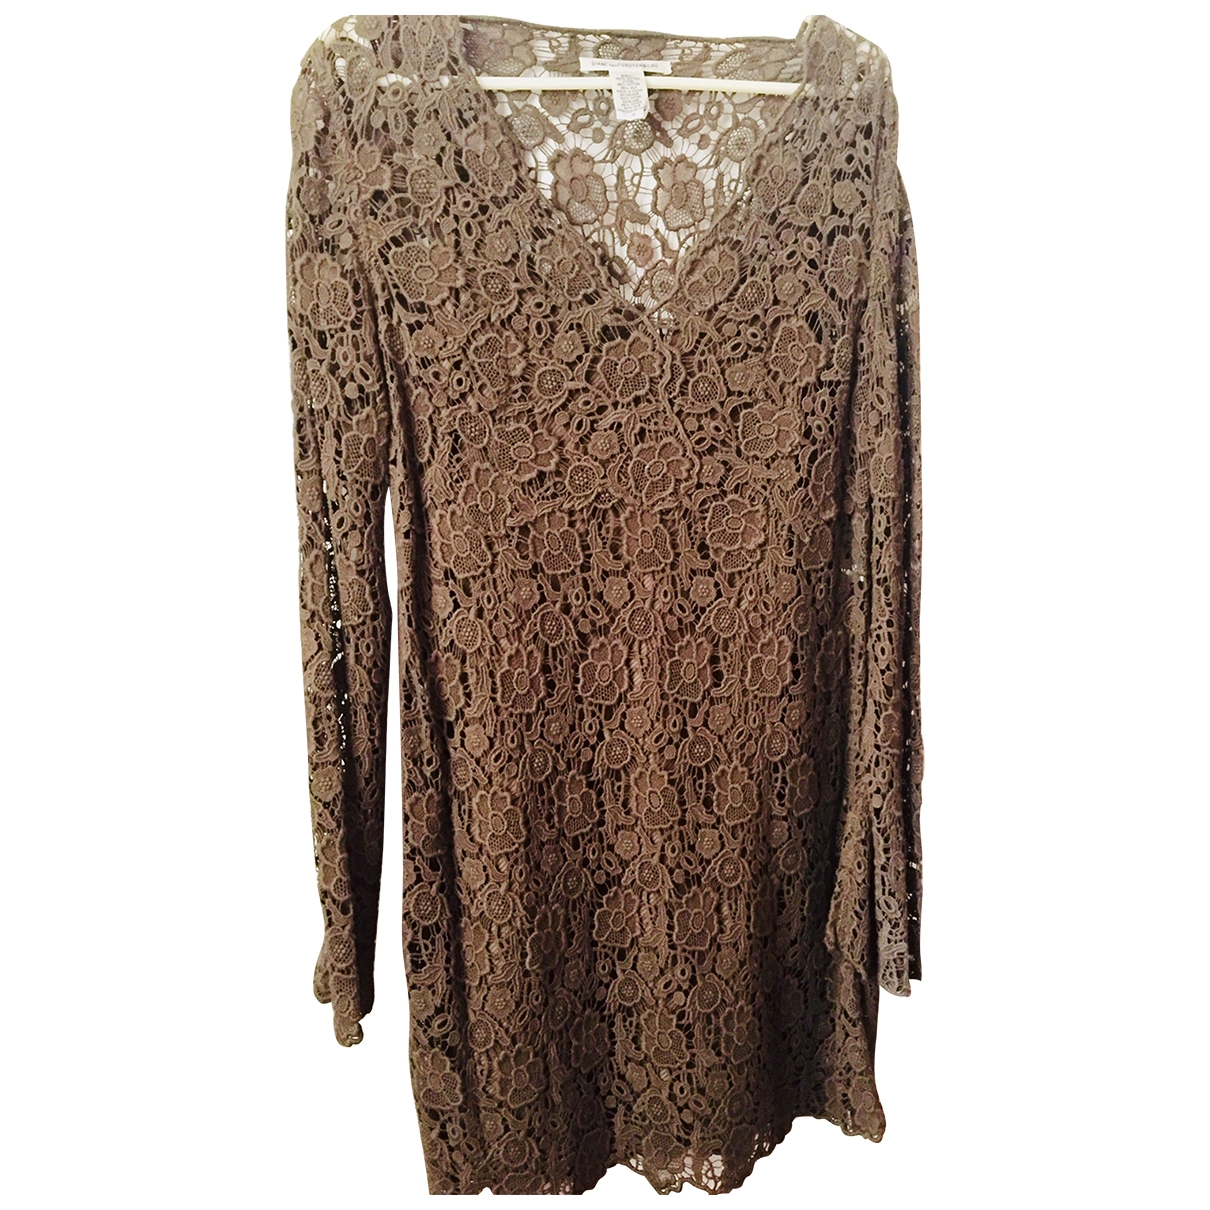 Diane Von Furstenberg \N Khaki Lace dress for Women 10 US